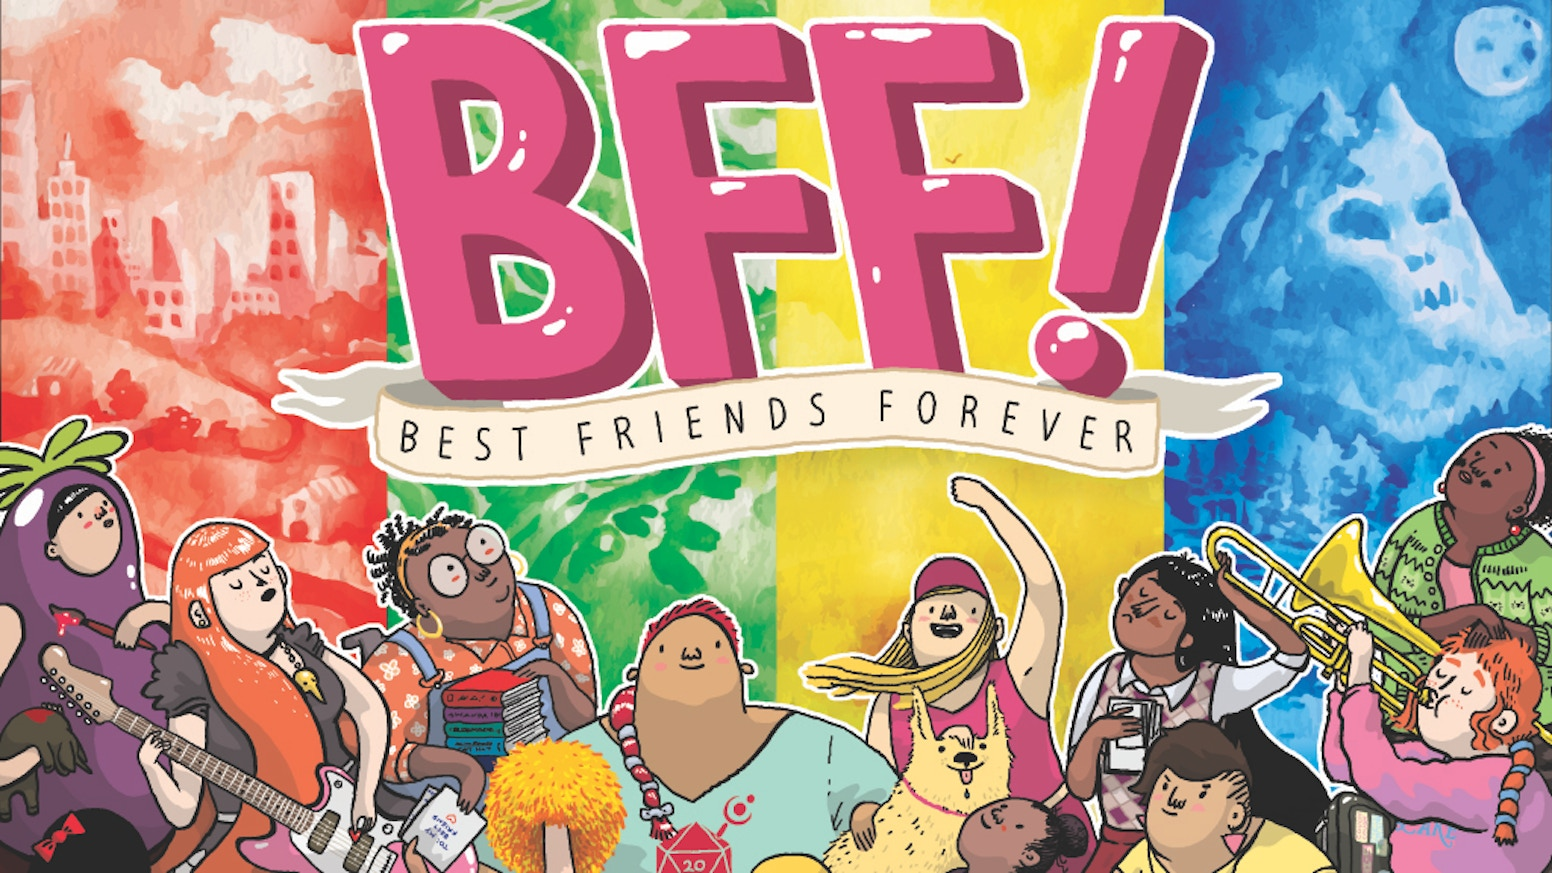 Best Friends Forever is a roleplaying game for 2-6 players of all ages by mother & son design duo: Ross Cowman and Terri Cohlene.